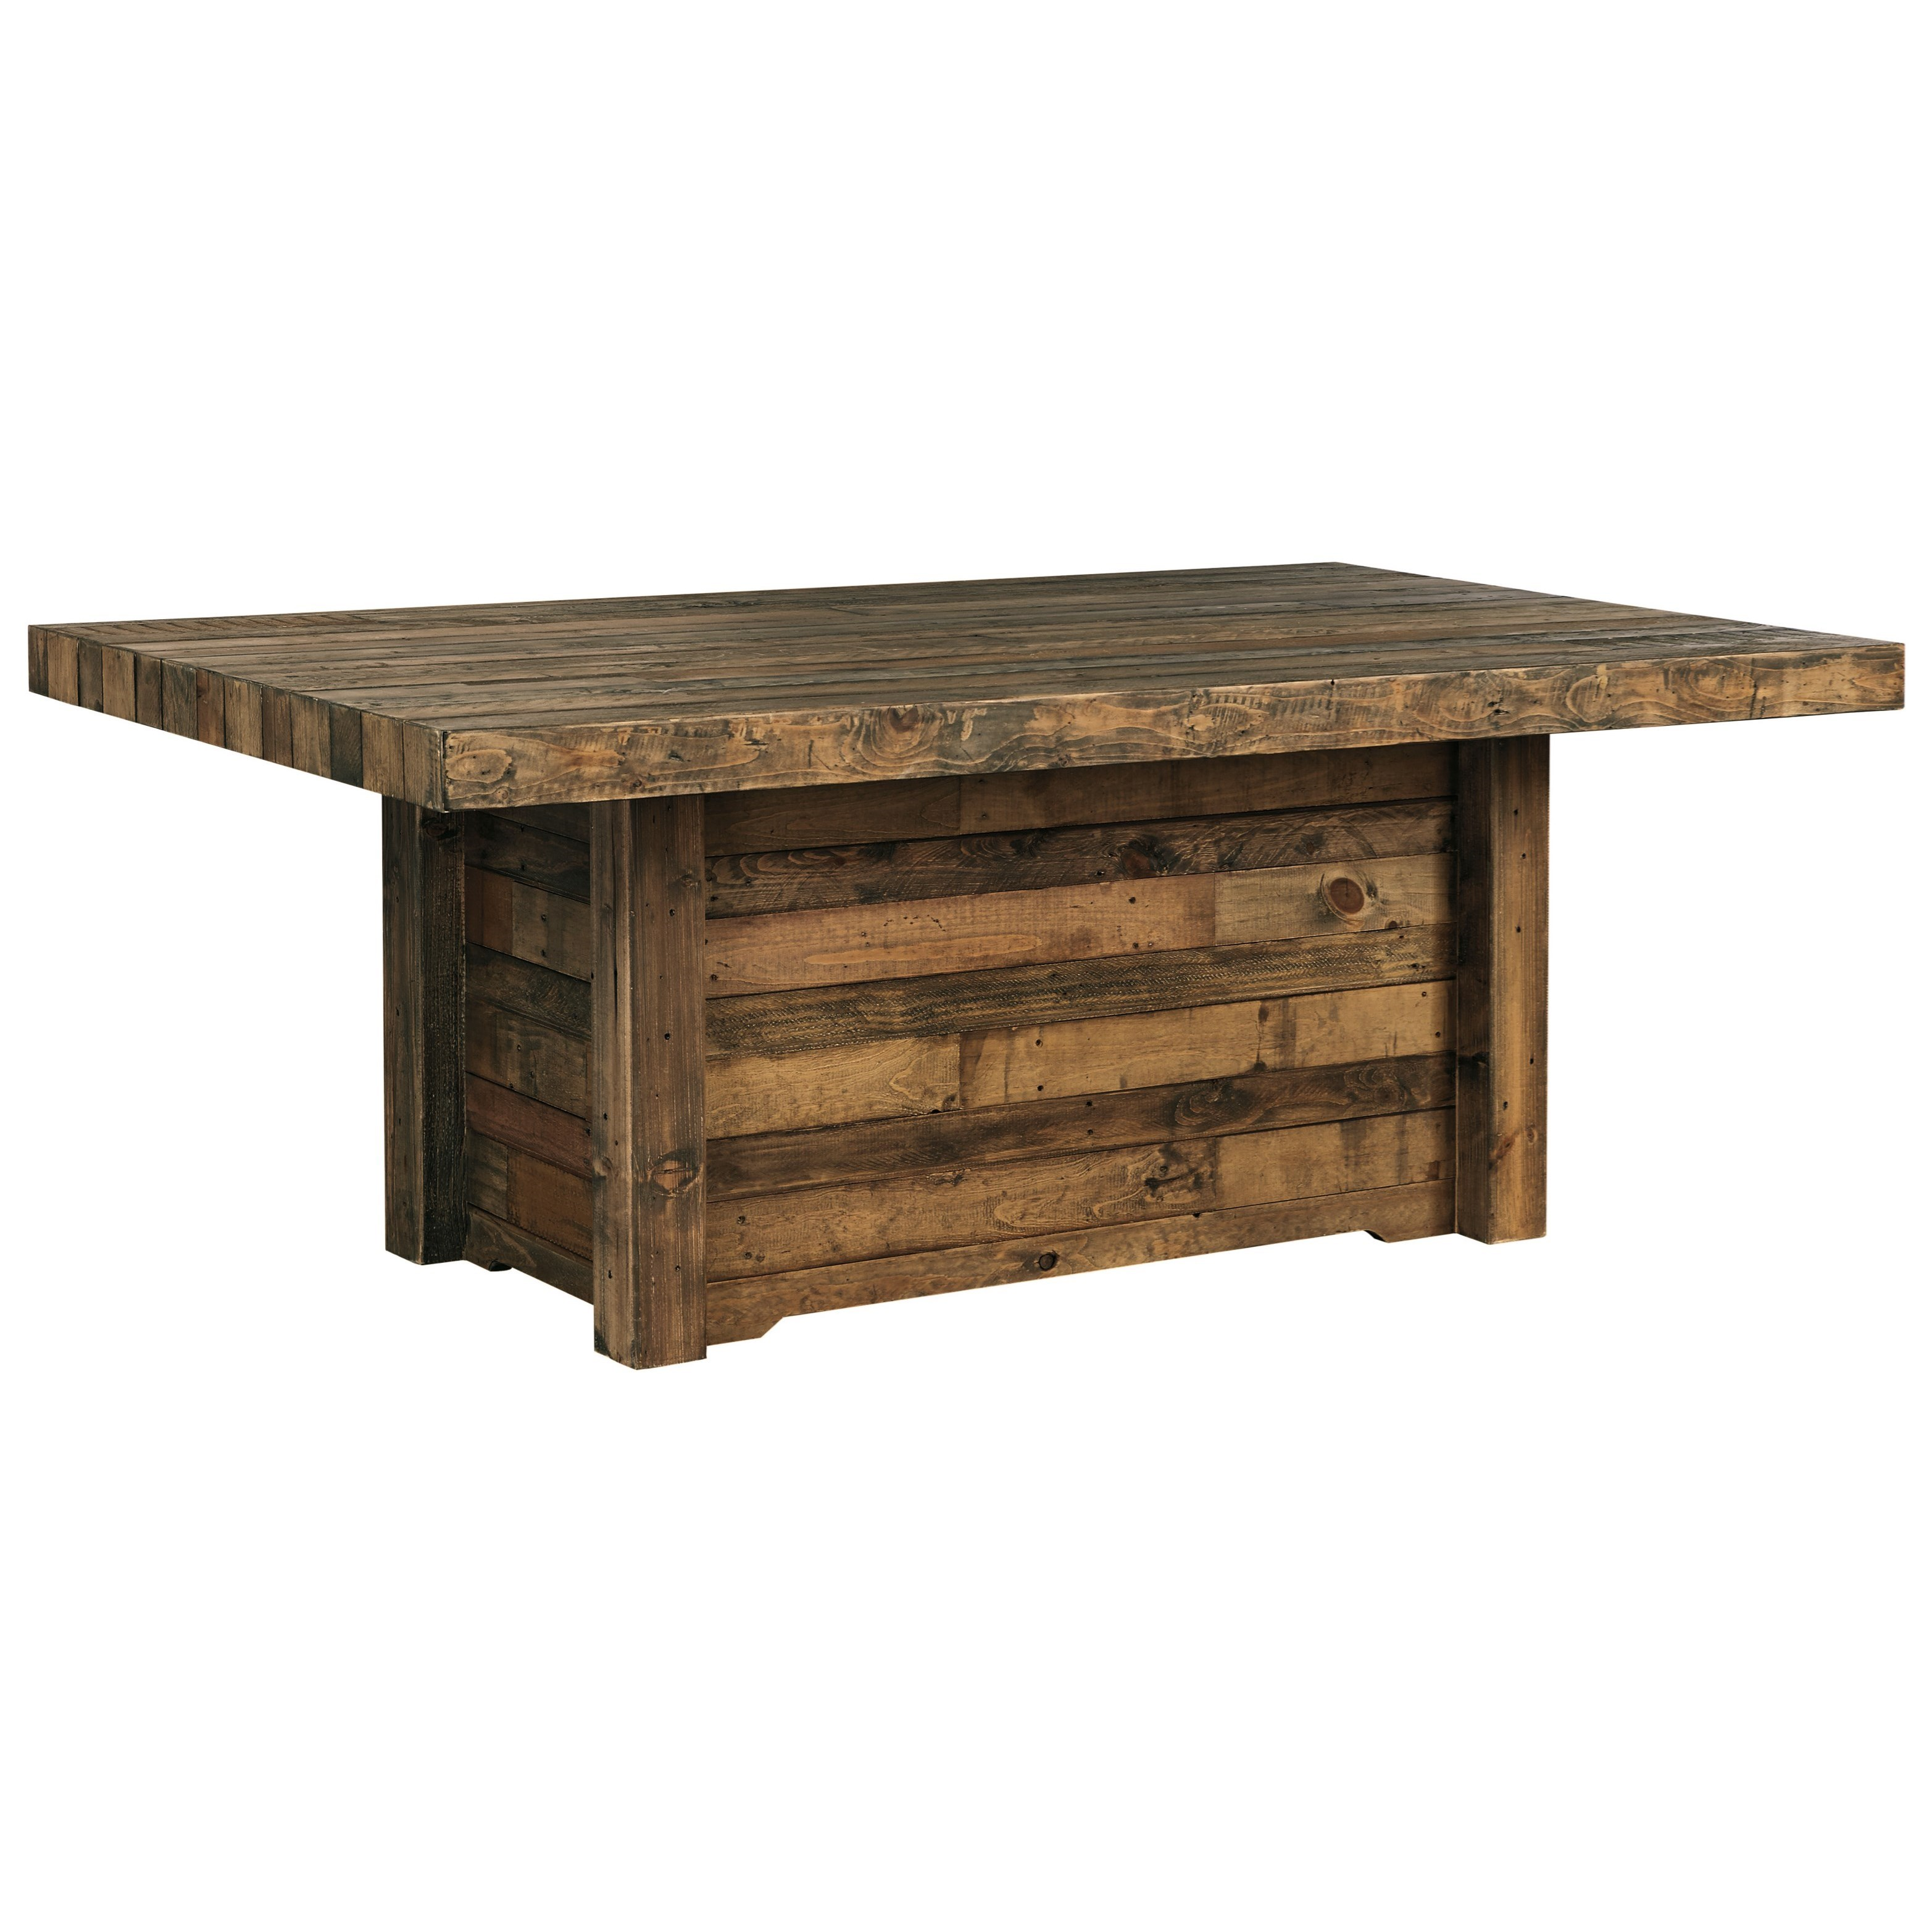 Solid Wood Dining Room Furniture: Solid Wood Reclaimed Pine Rectangular Dining Room Table By